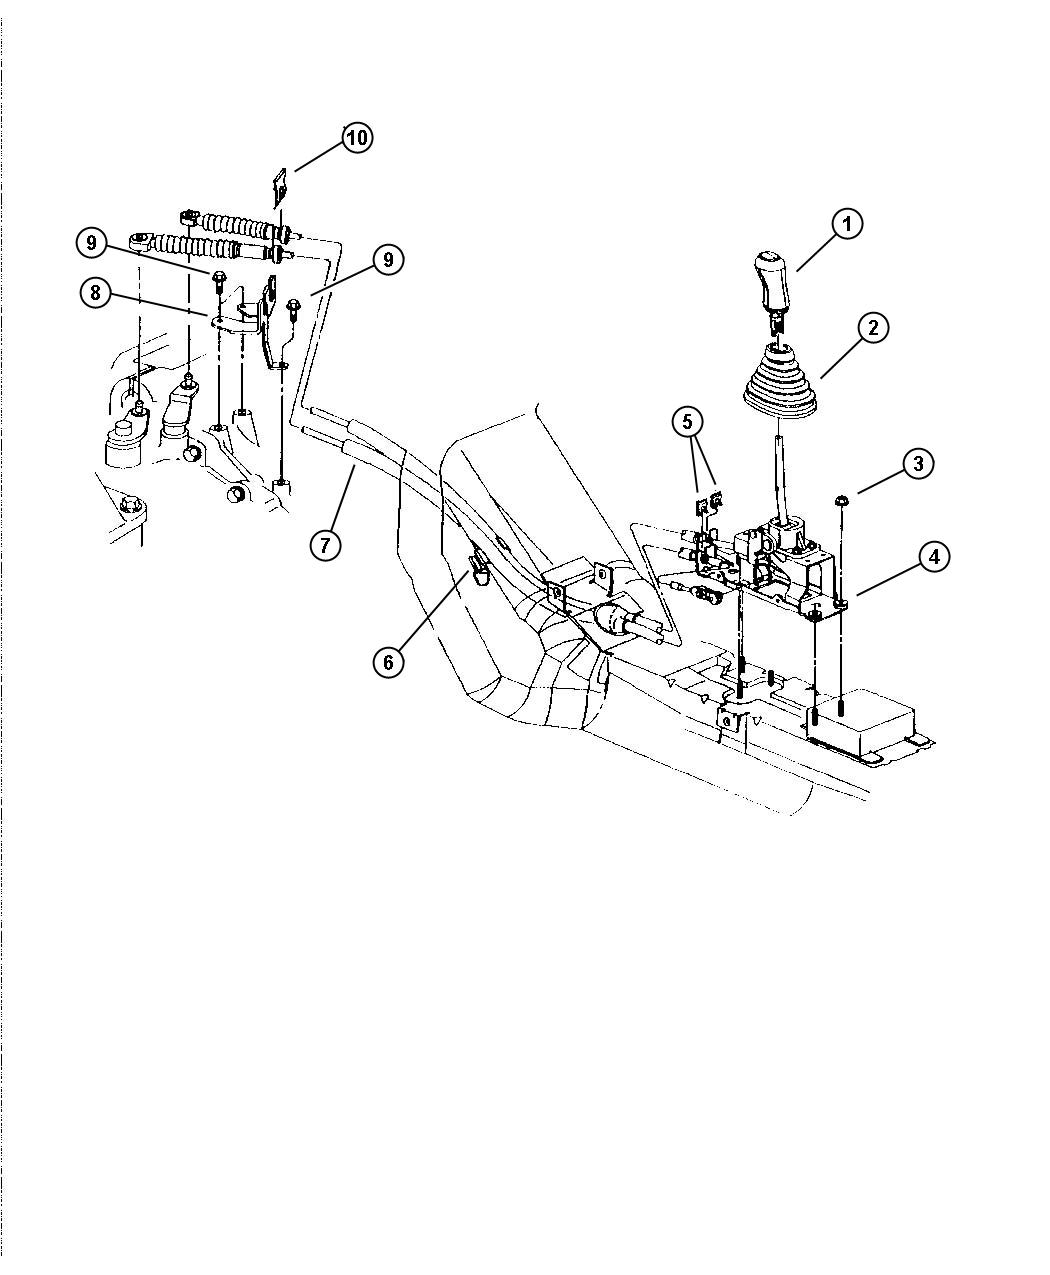 2000 kia sephia rear brake diagram